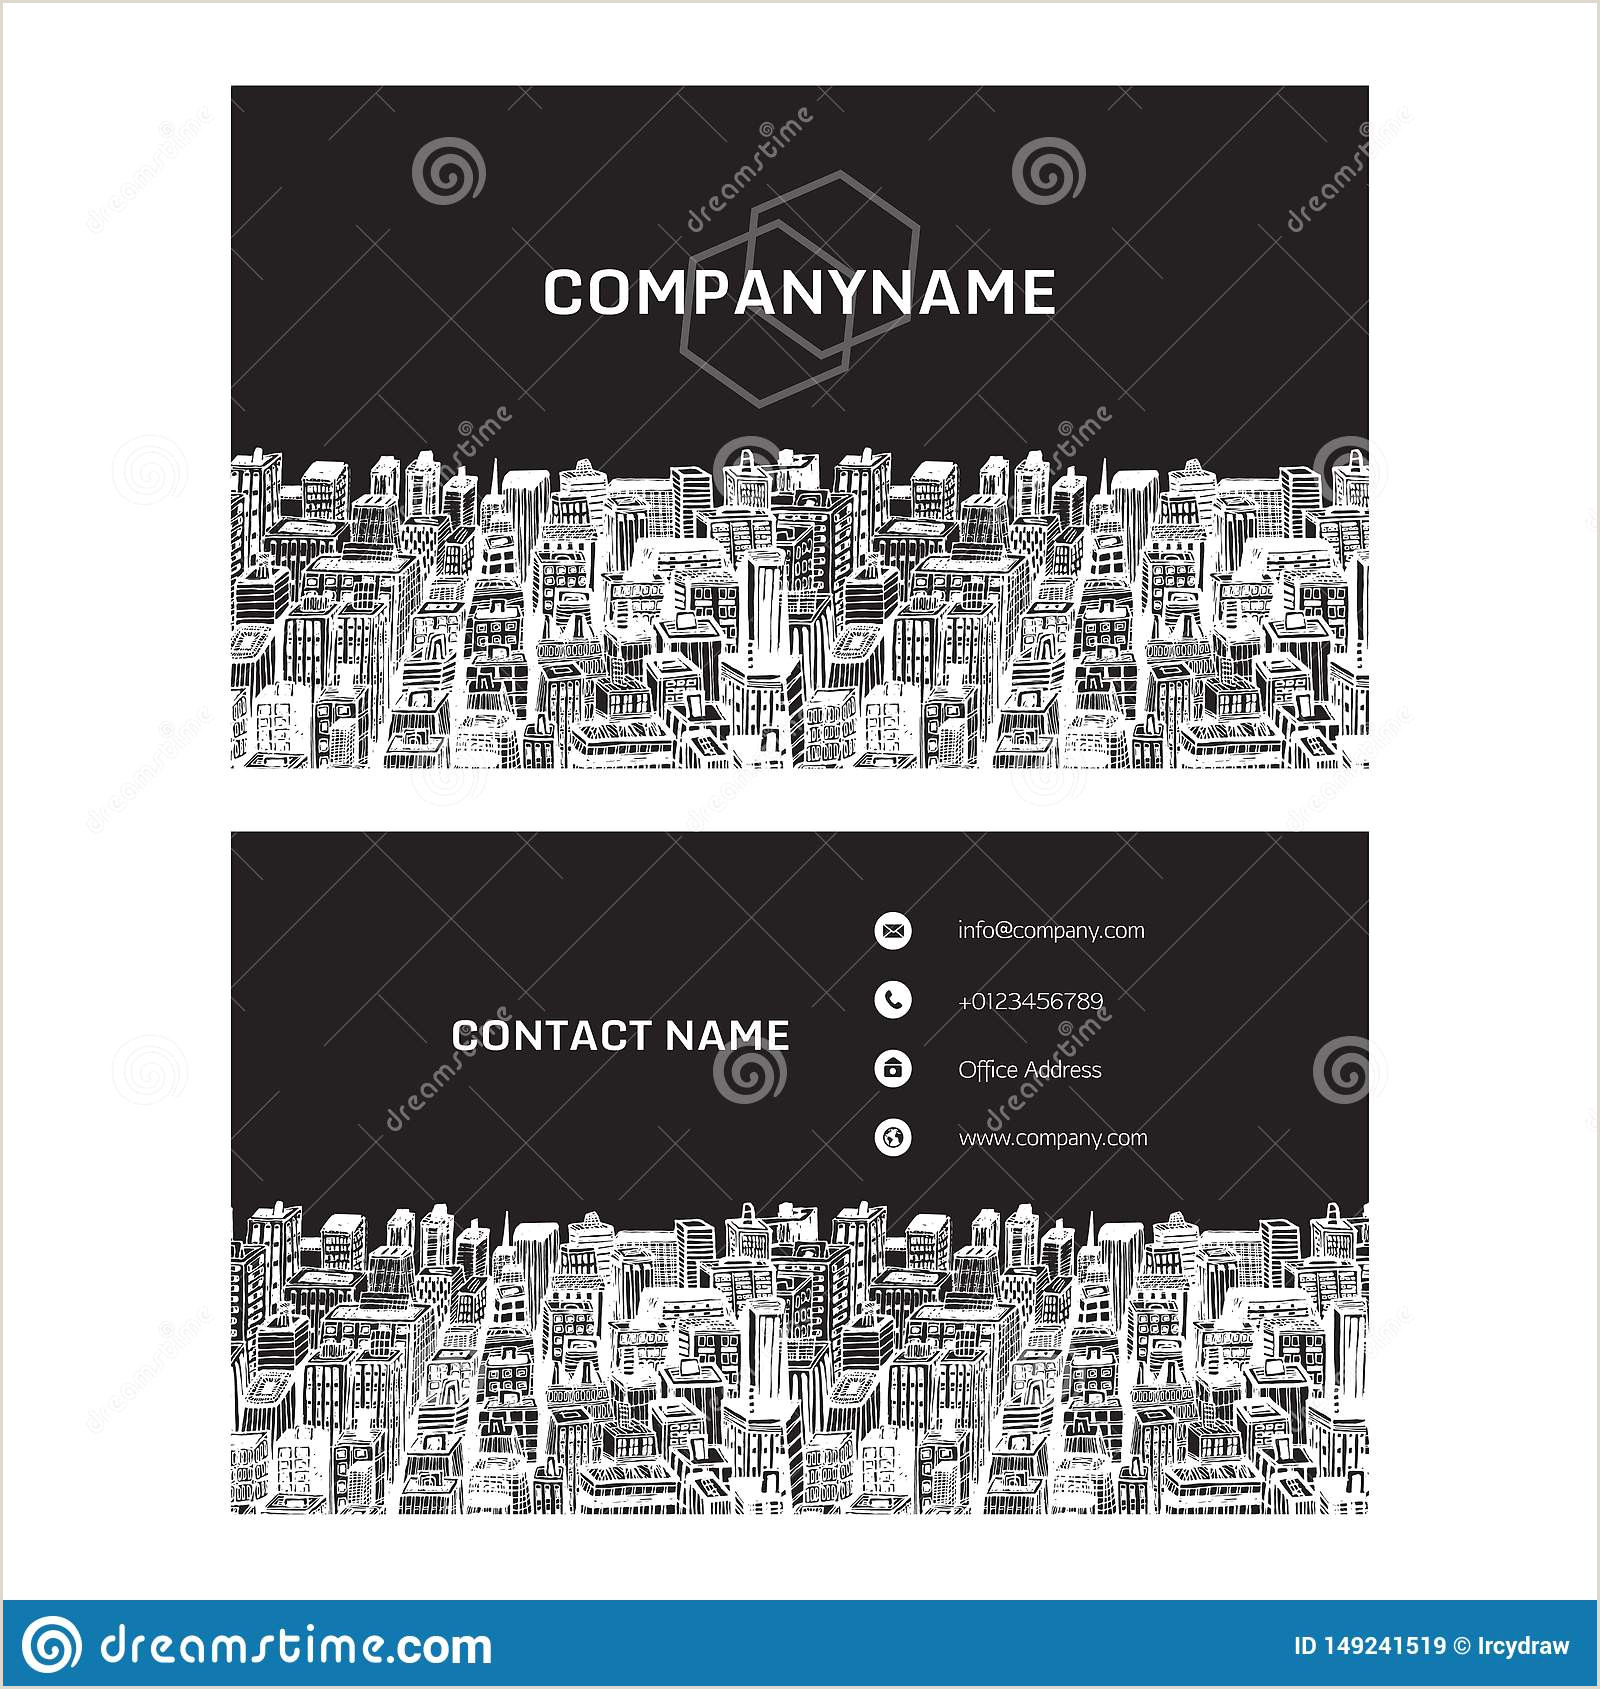 Cool Unique Business Cards For Realtores Real Estate Business Card With Hand Drawn Cityscape Stock